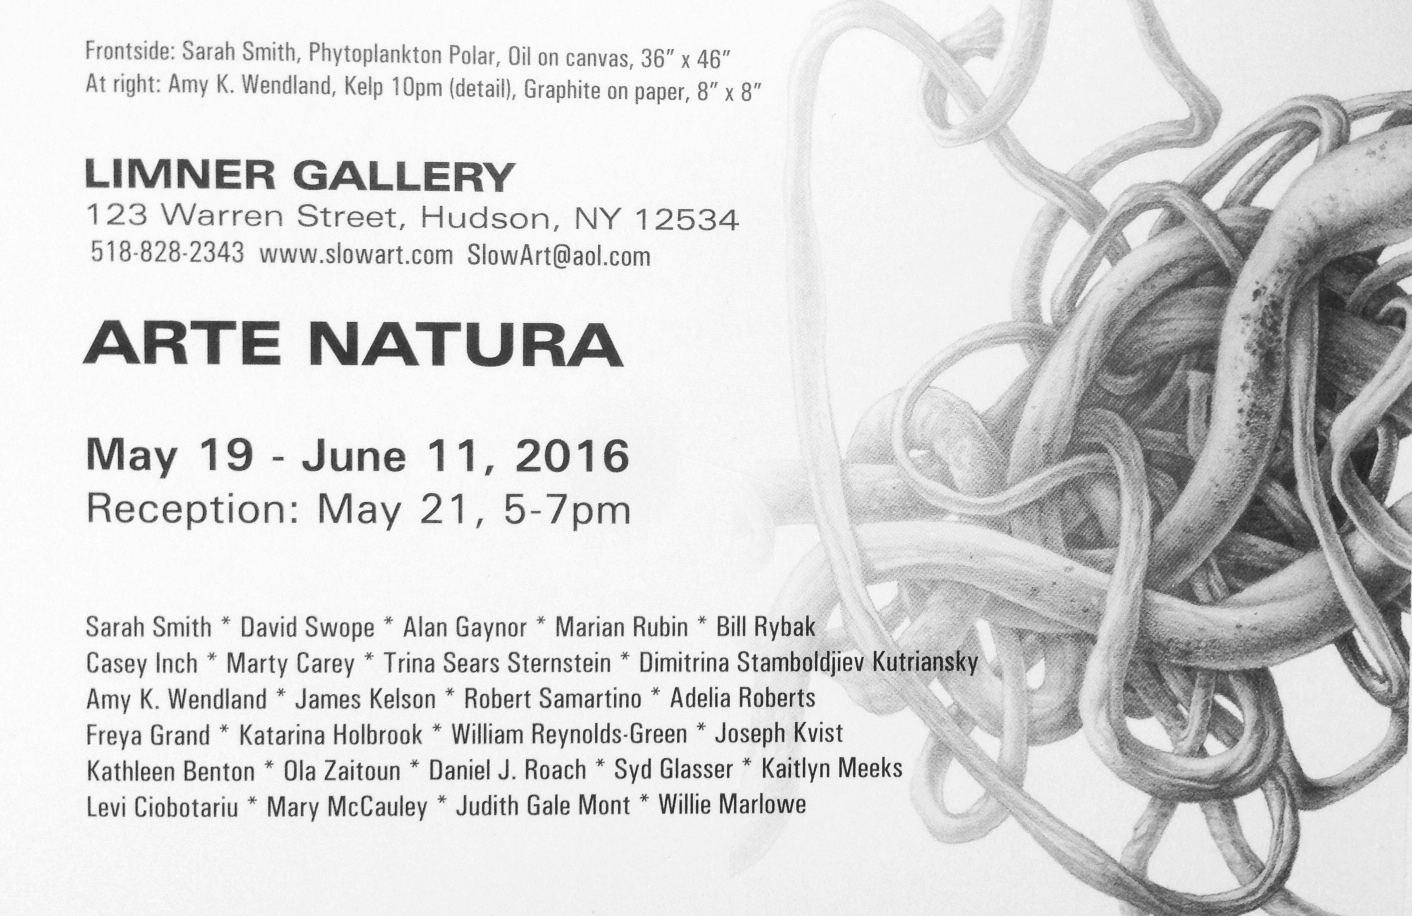 Arte Natura   Limner Gallery  123 Warren Street  Hudson, NY 12534  May 19th - June 11th, 2016  Opening Reception: Saturday, May 21st 5-7pm